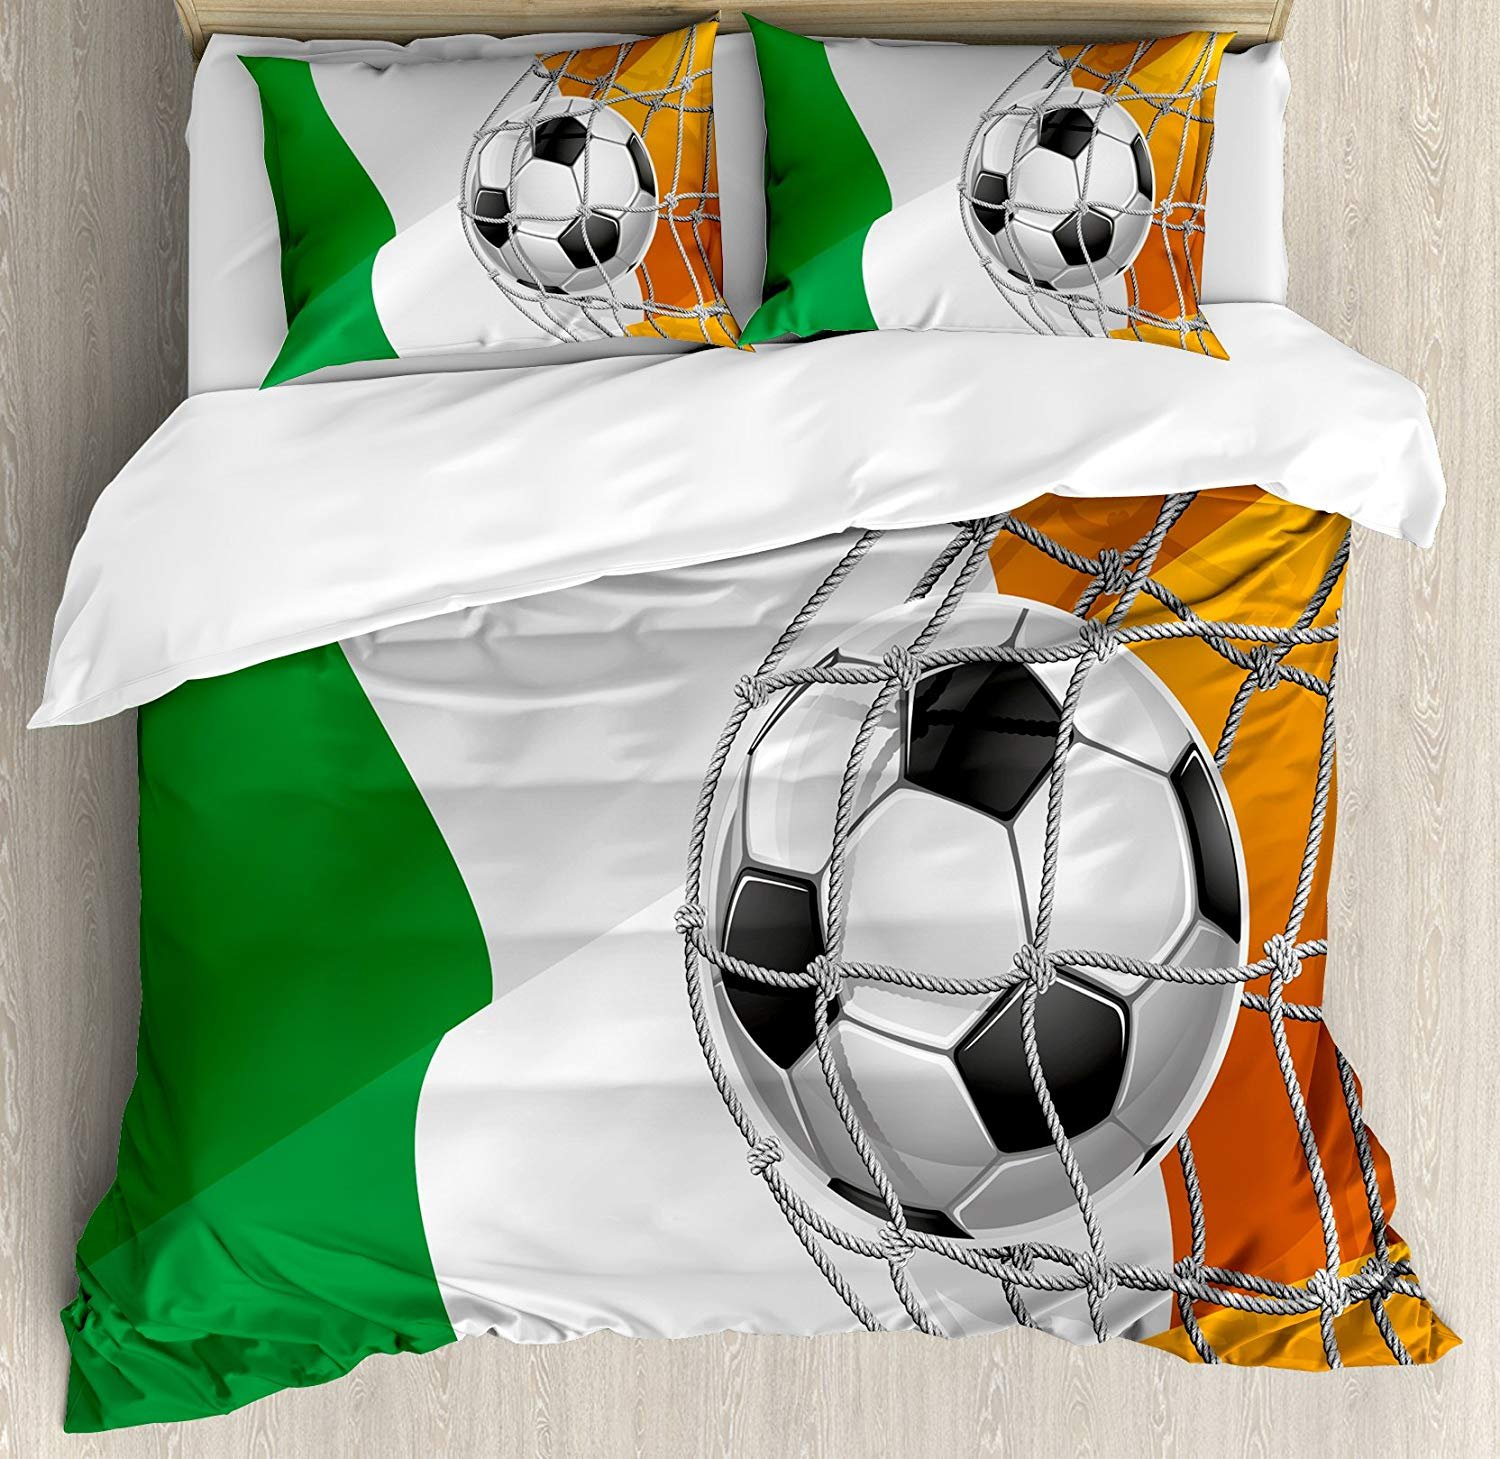 Twin Size Irish 3 PCS Duvet Cover Set, Sports Theme Soccer Ball in a Net Game Goal with Ireland National Flag Victory Win, Bedding Set Quilt Bedspread for Children/Teens/Adults/Kids, Multicolor